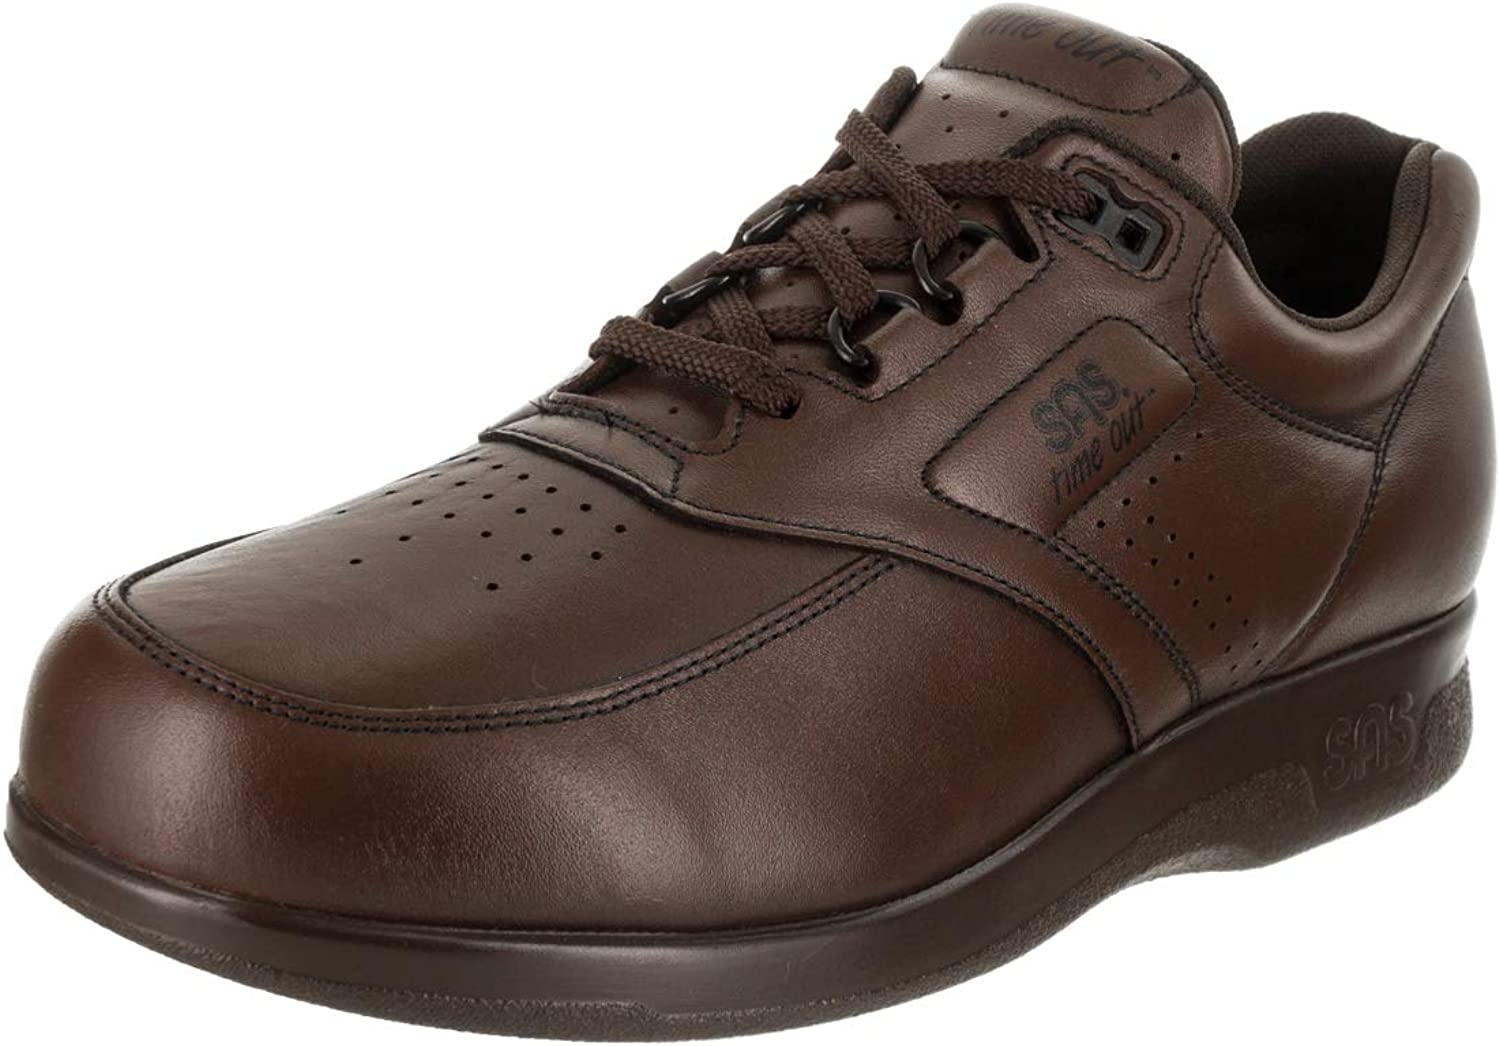 SAS Men's Time Out Casual shoes